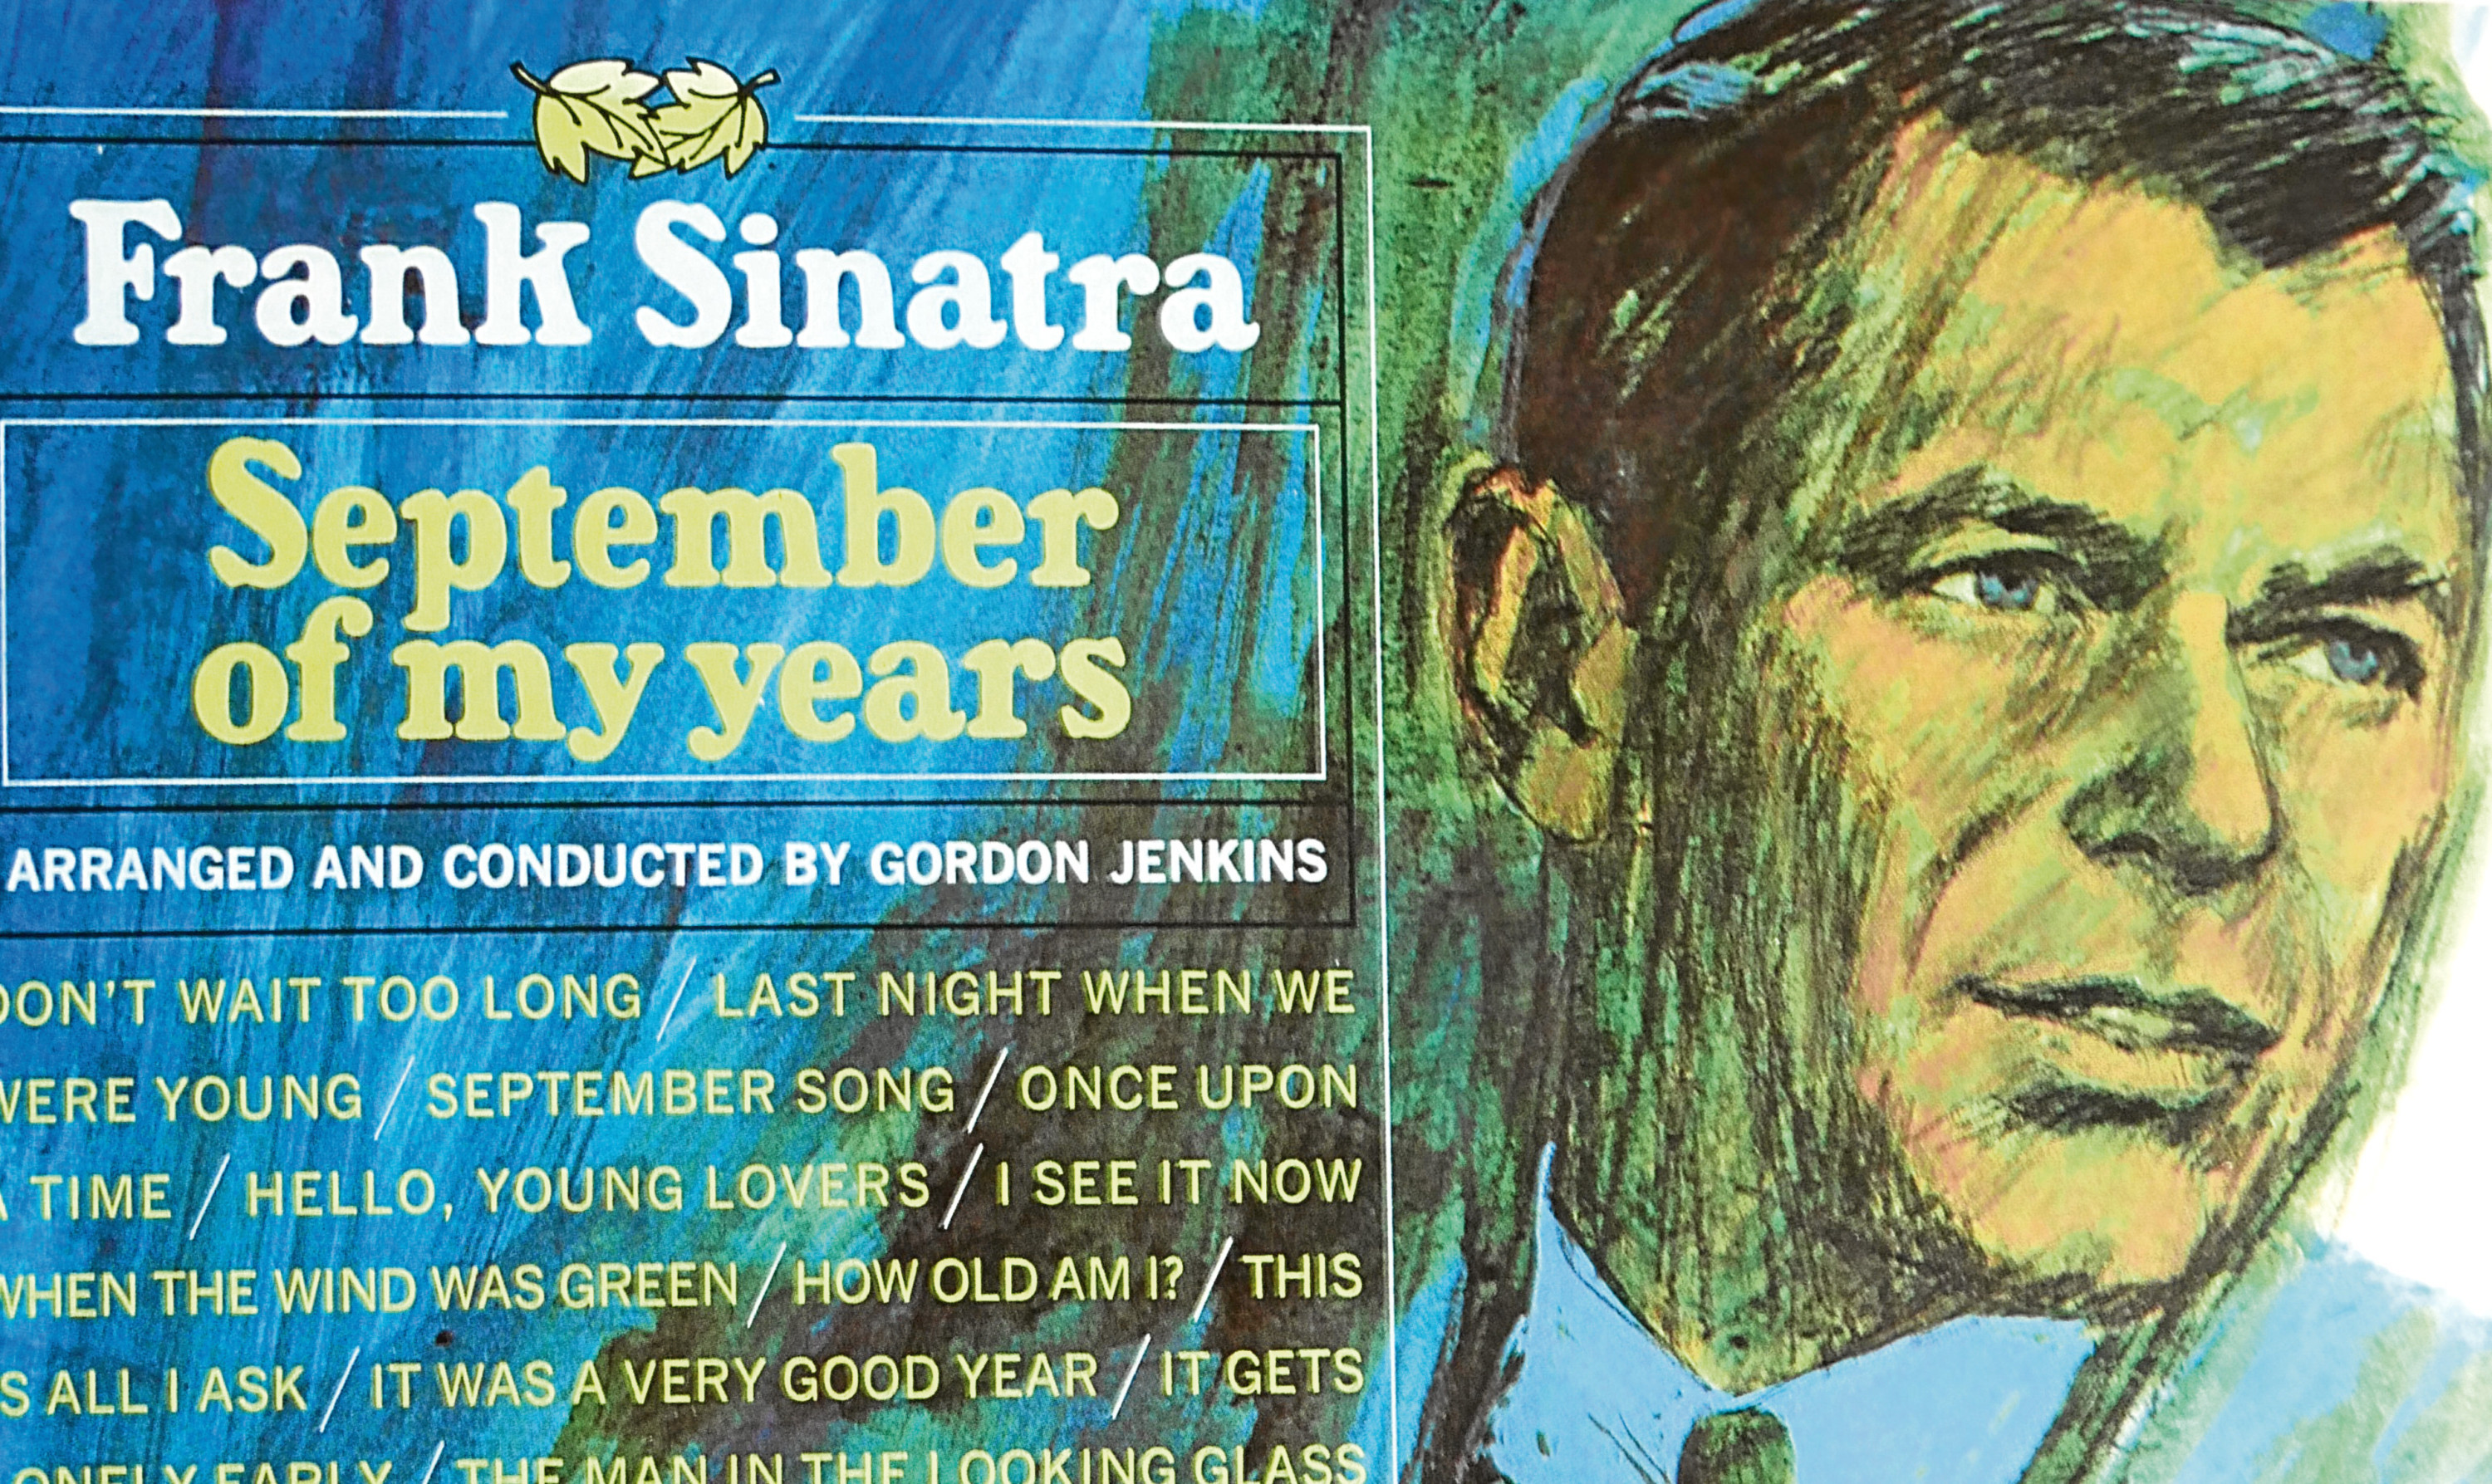 Frank Sinatra's September of my Years, whose sleeve notes entranced Jim before he had even put the record on.